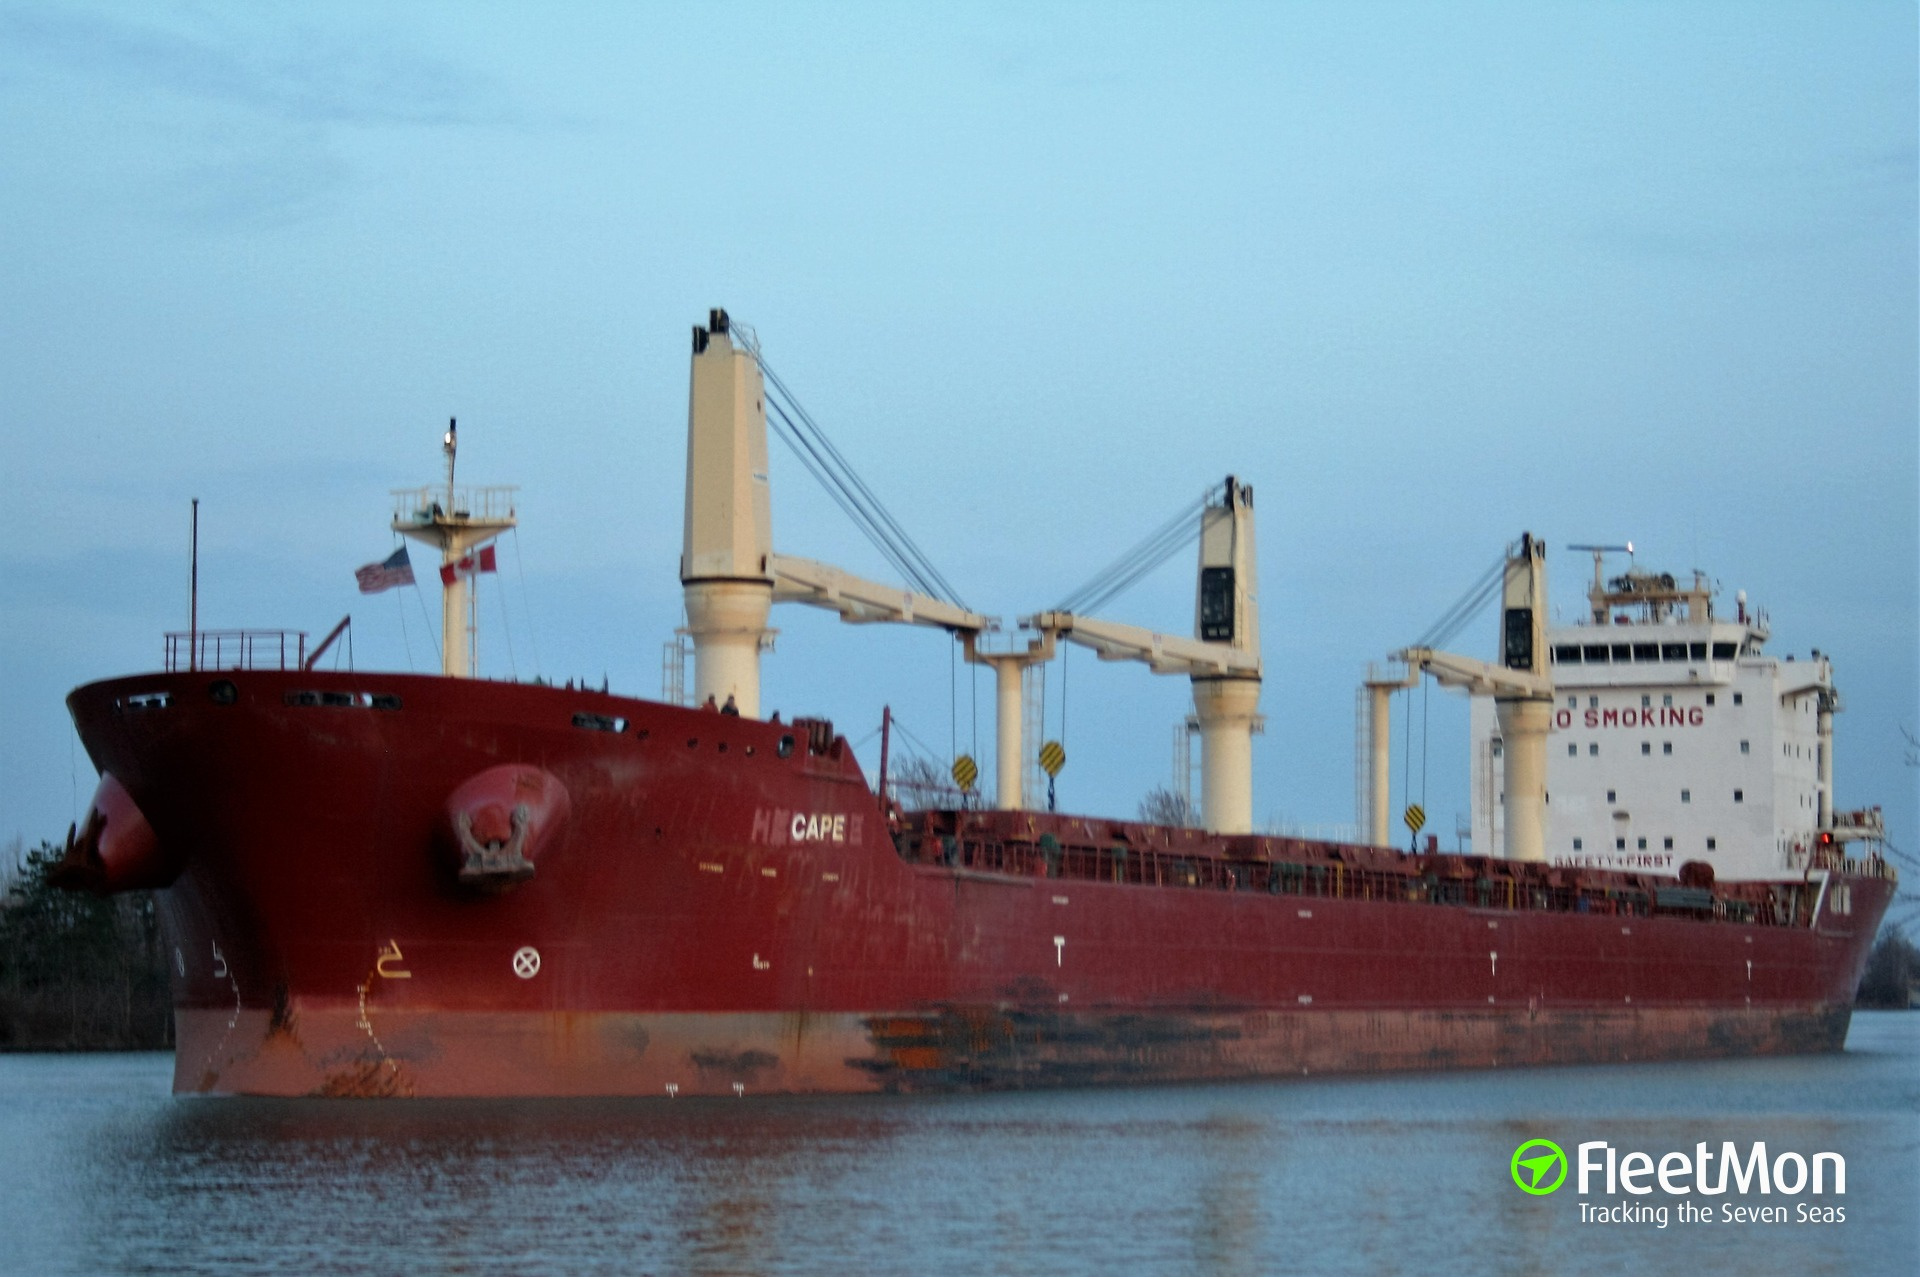 Bulk carrier Heloise collided with the tug in Port of Montreal